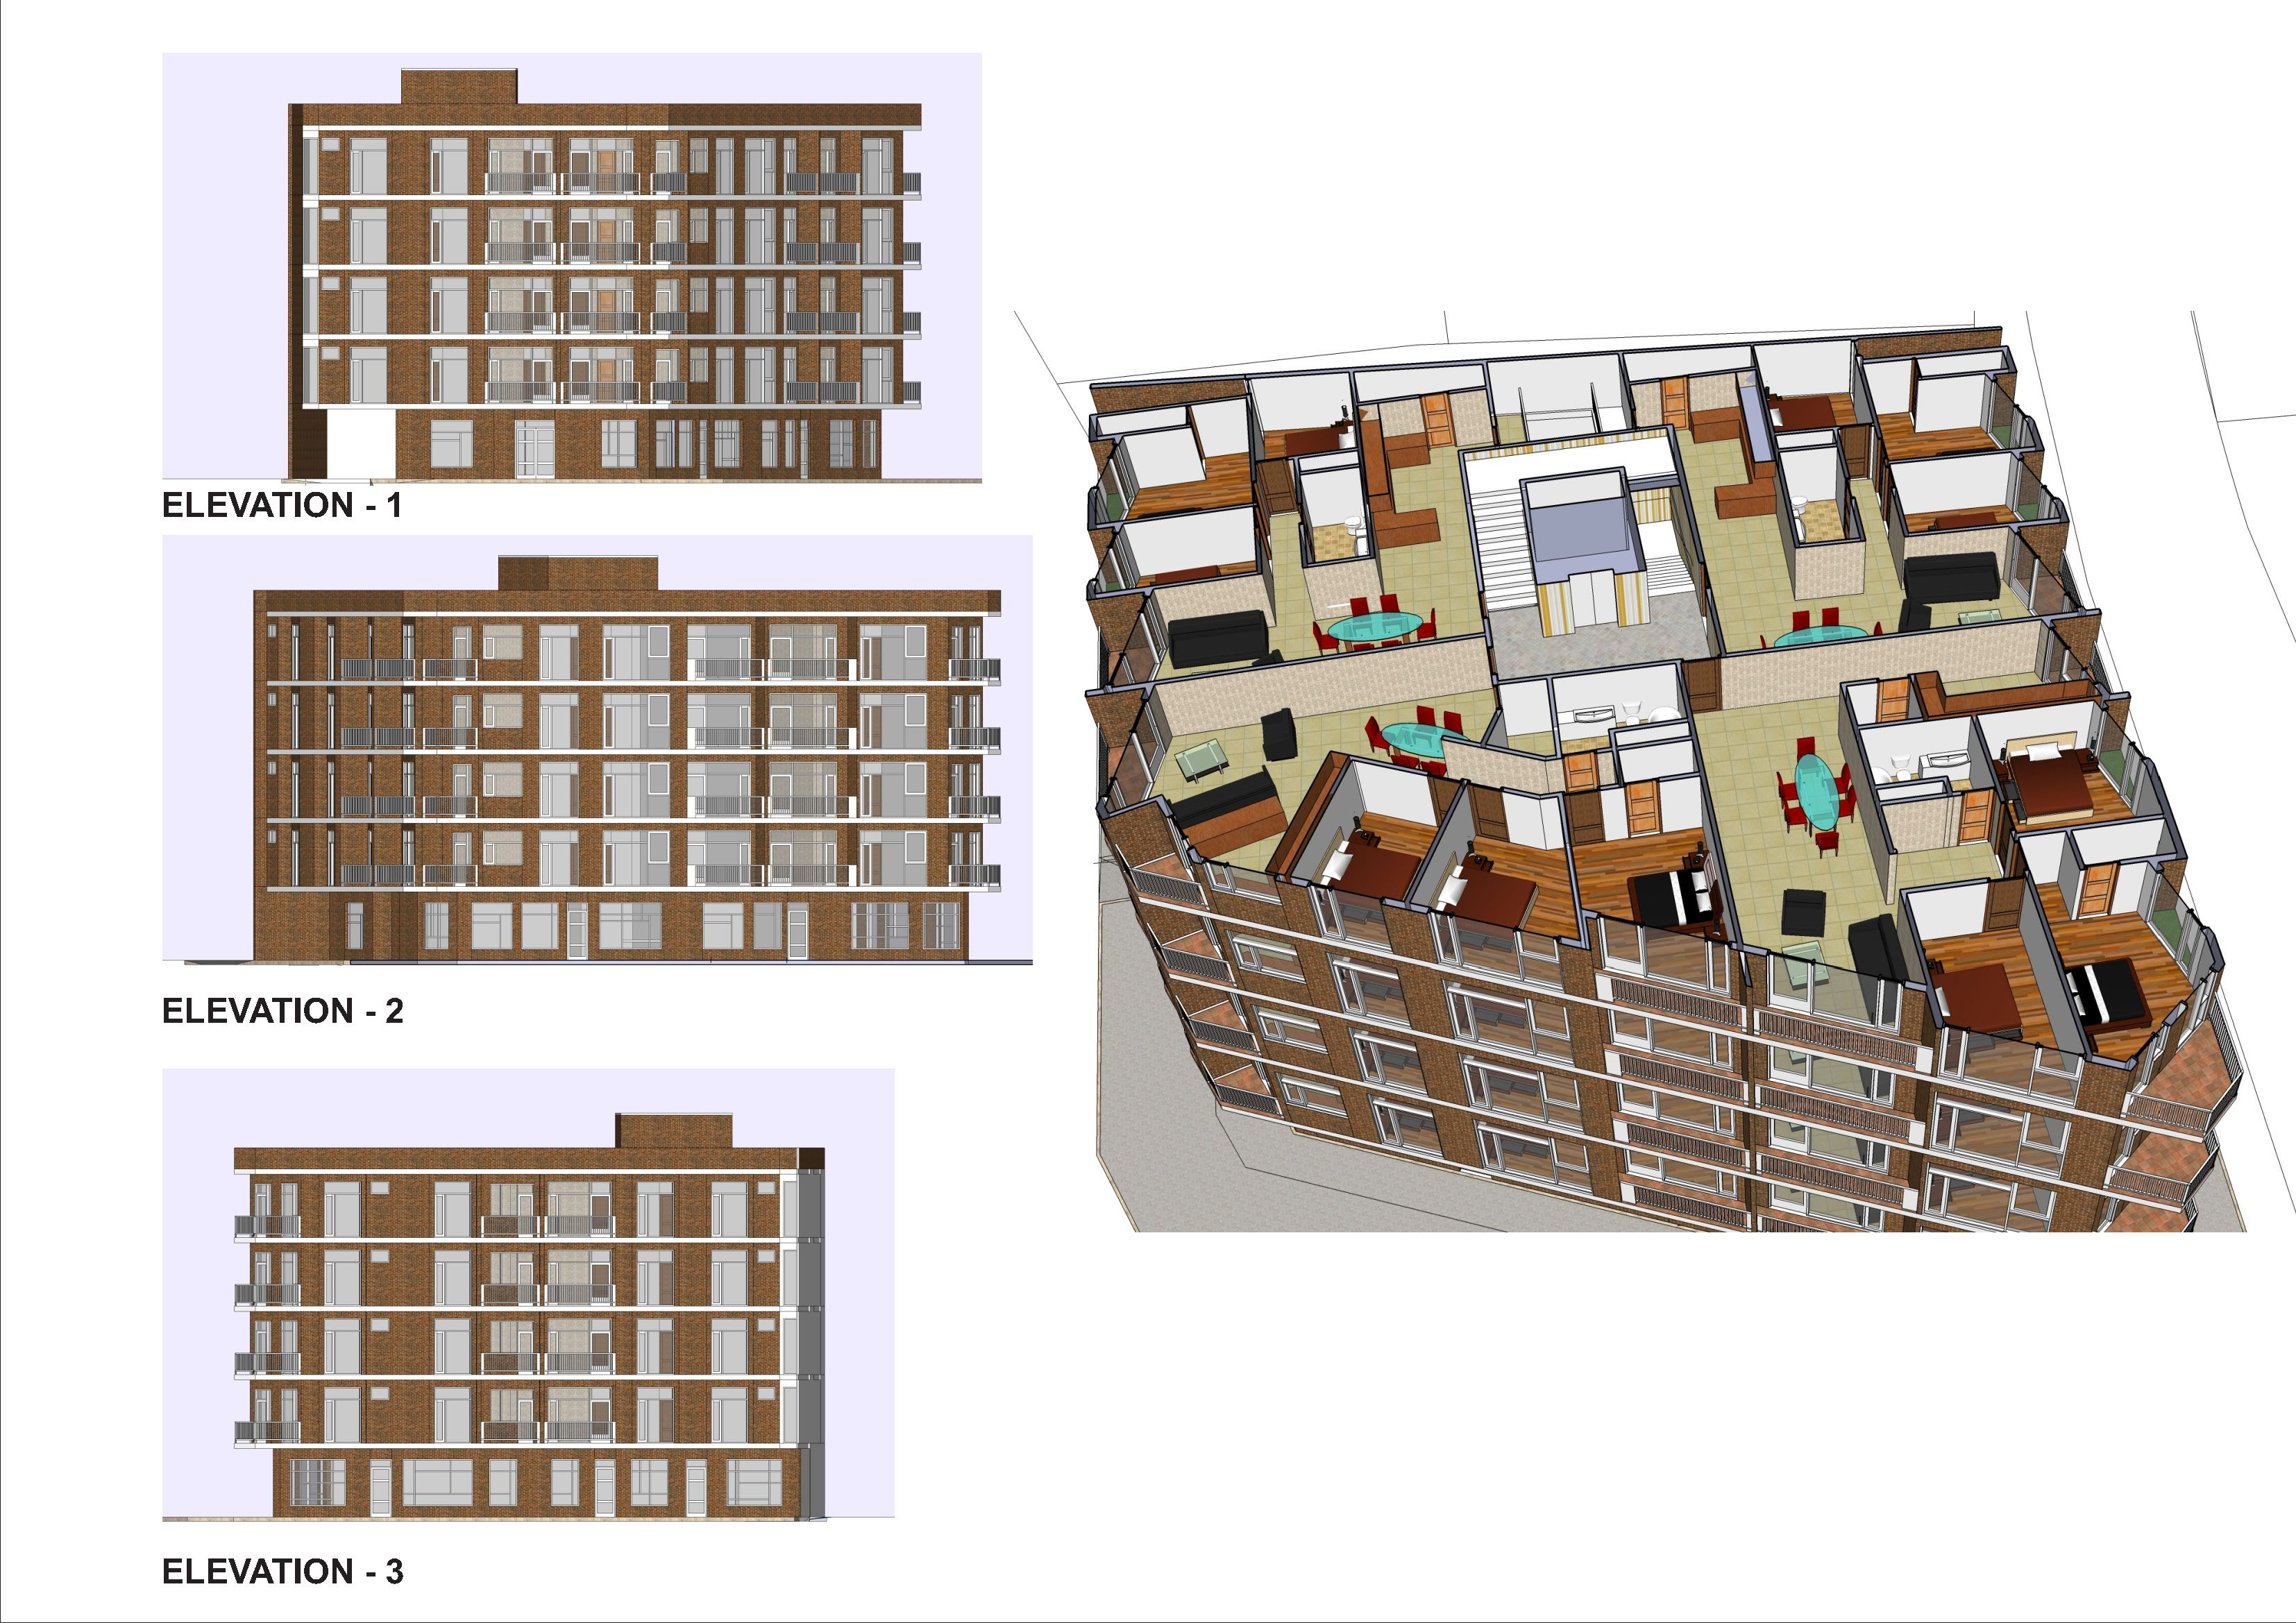 Apartment building plans location aksaray turkey new for Building layout design